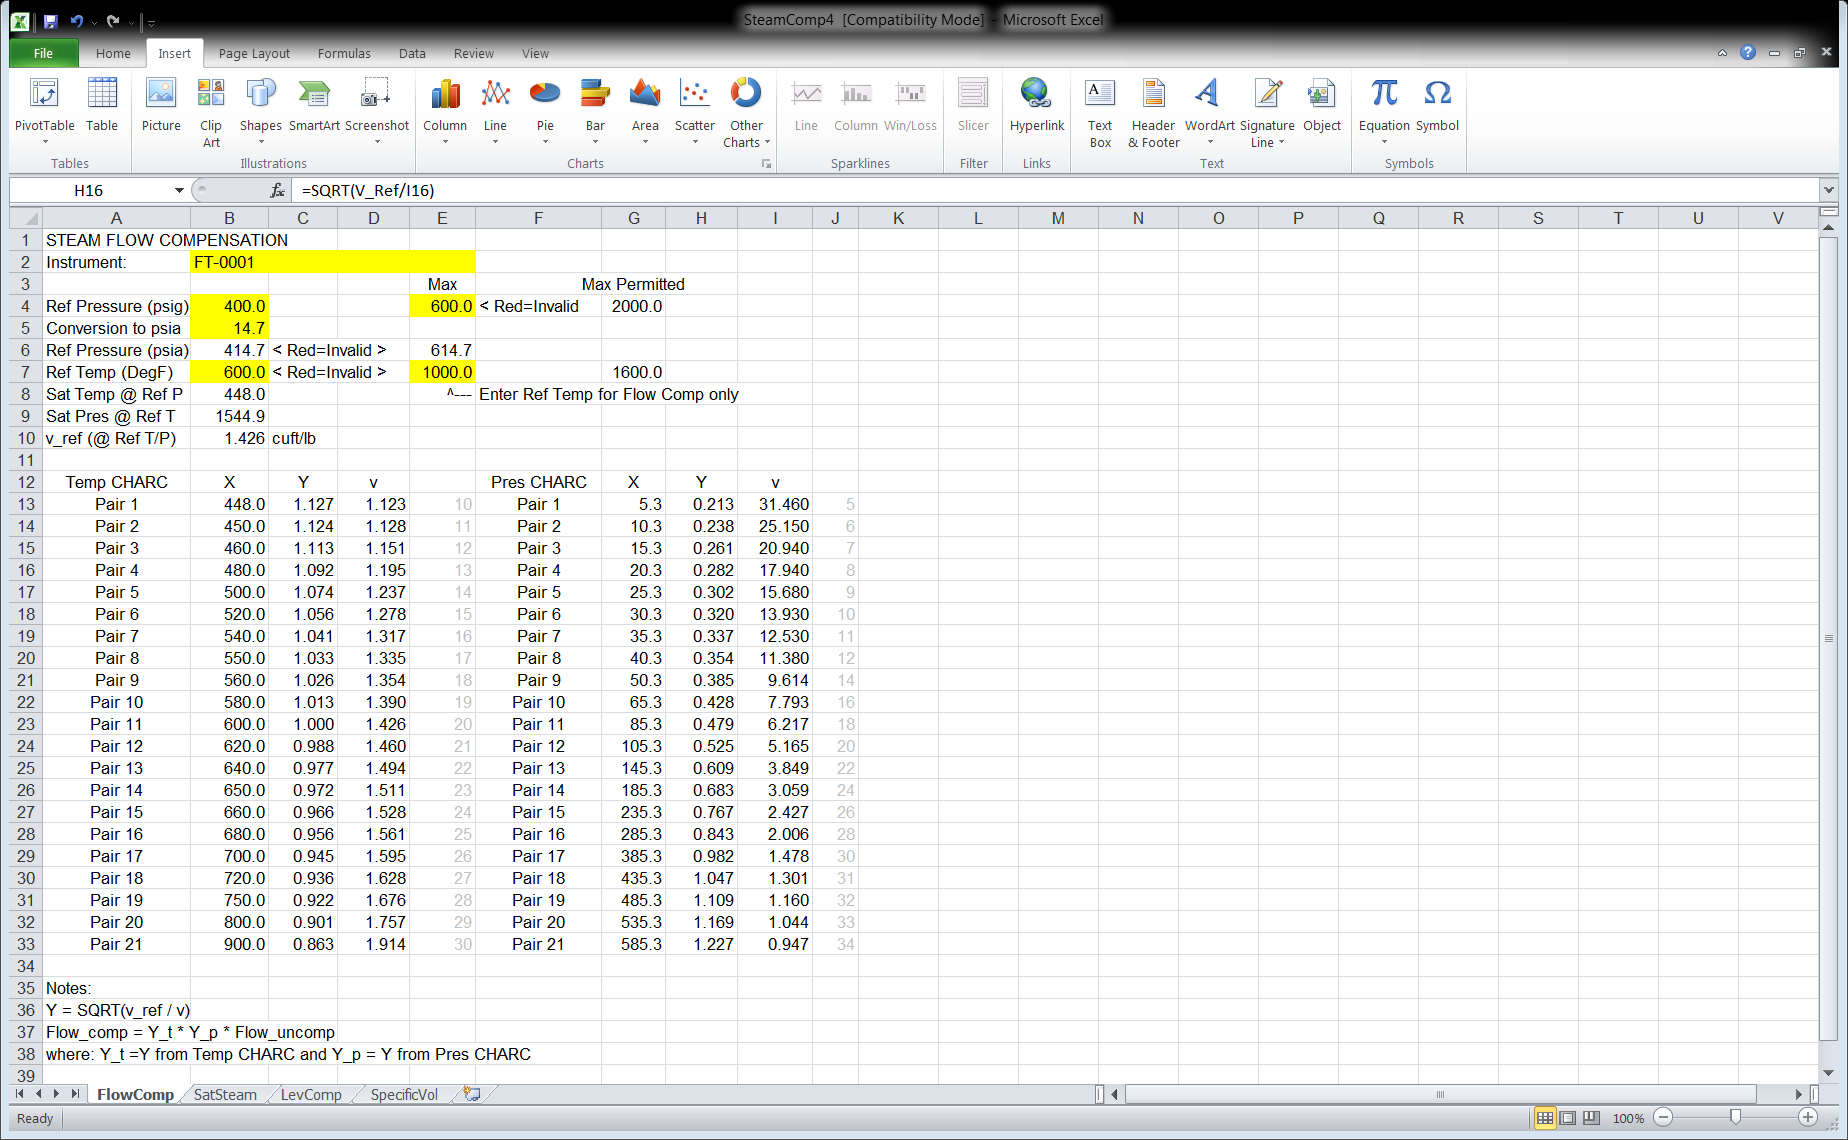 Figure 2 Excel Spreadsheet SteamComp4 Tab FlowComp